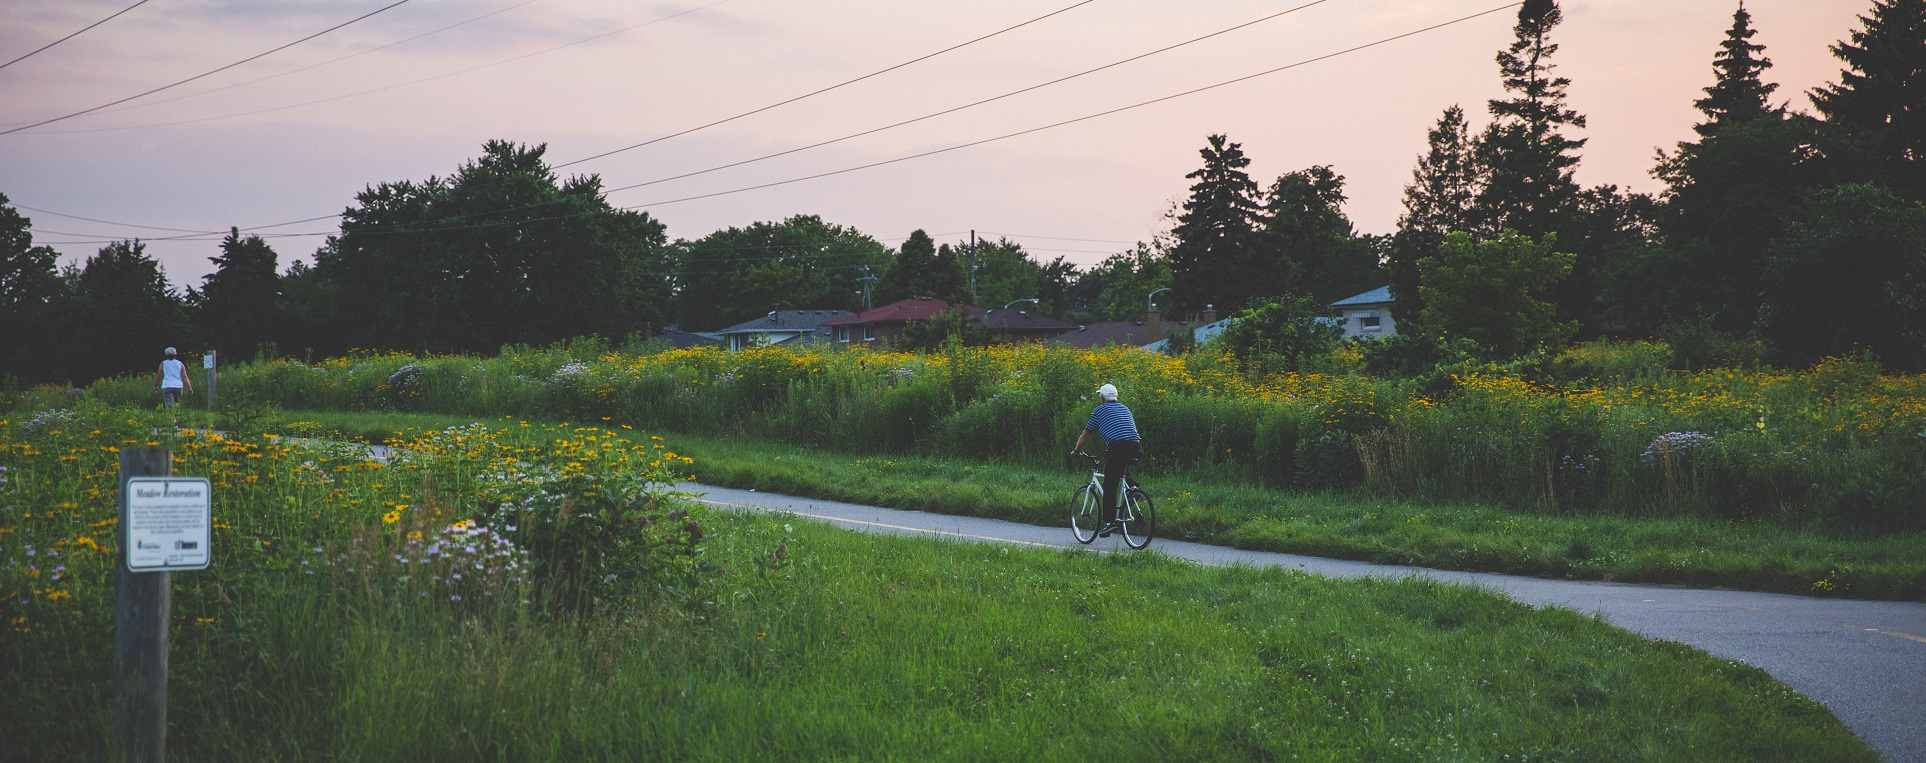 cyclist on Meadoway trail at sunset